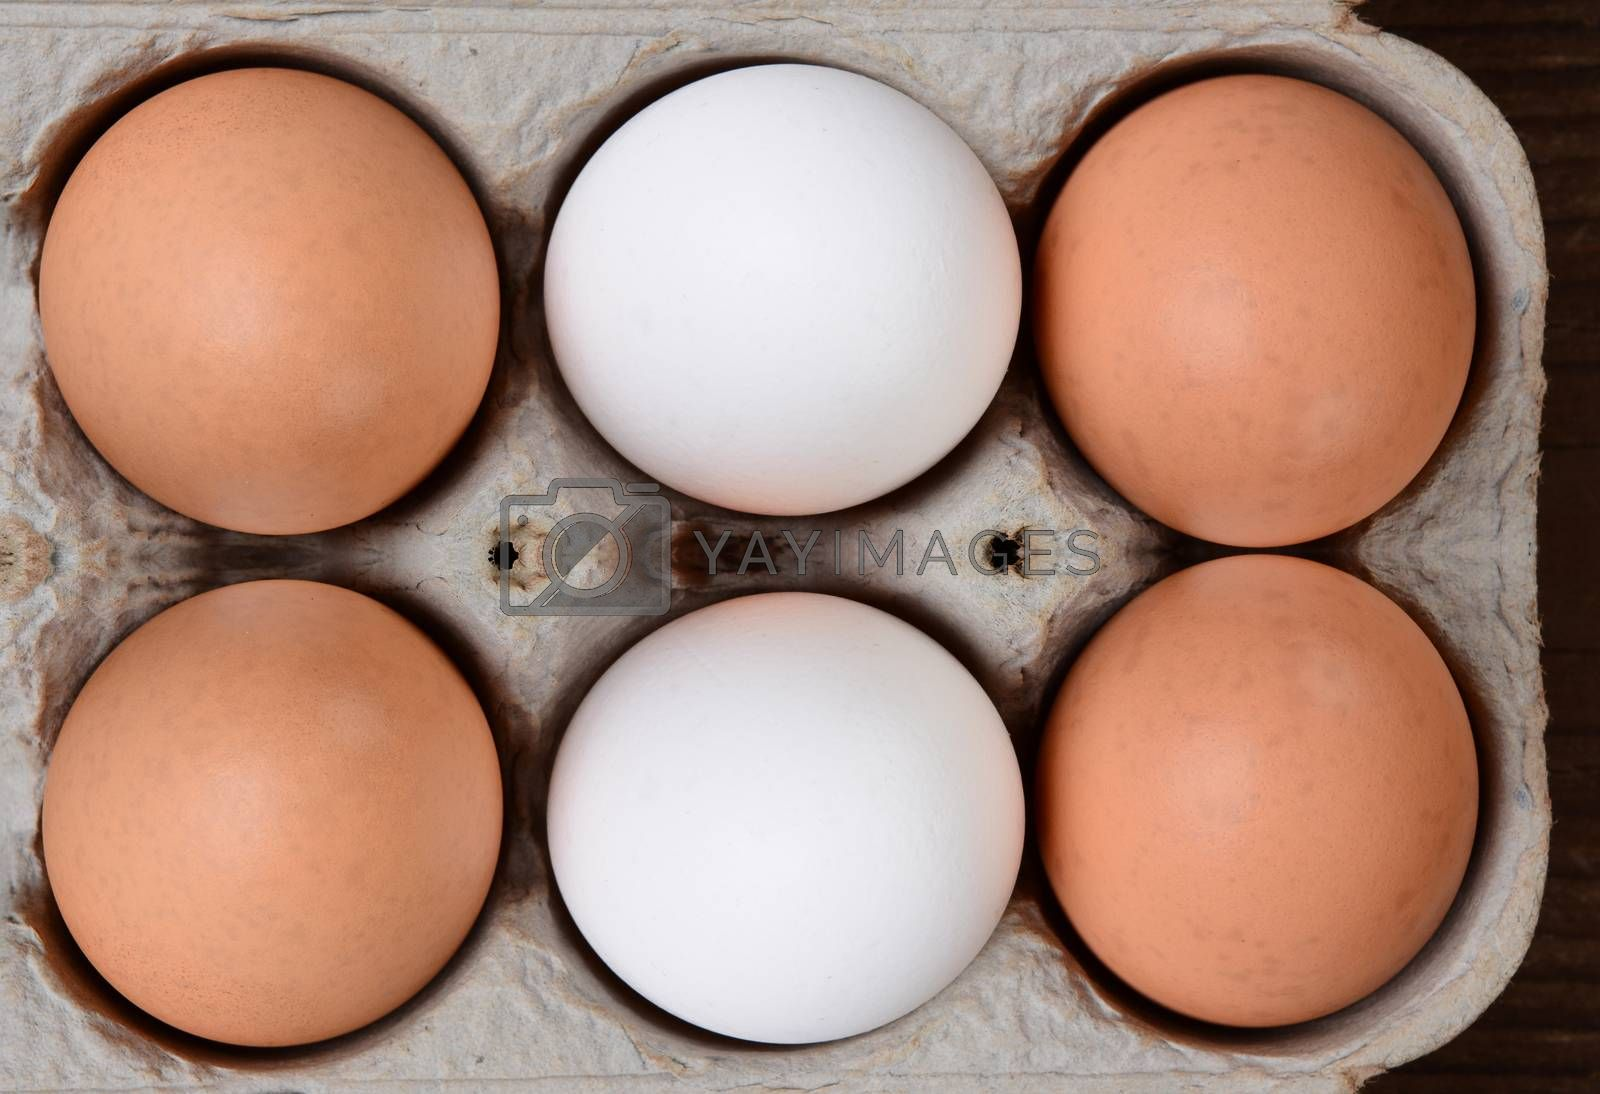 Brown and White Eggs in 6 Pack Carton by sCukrov